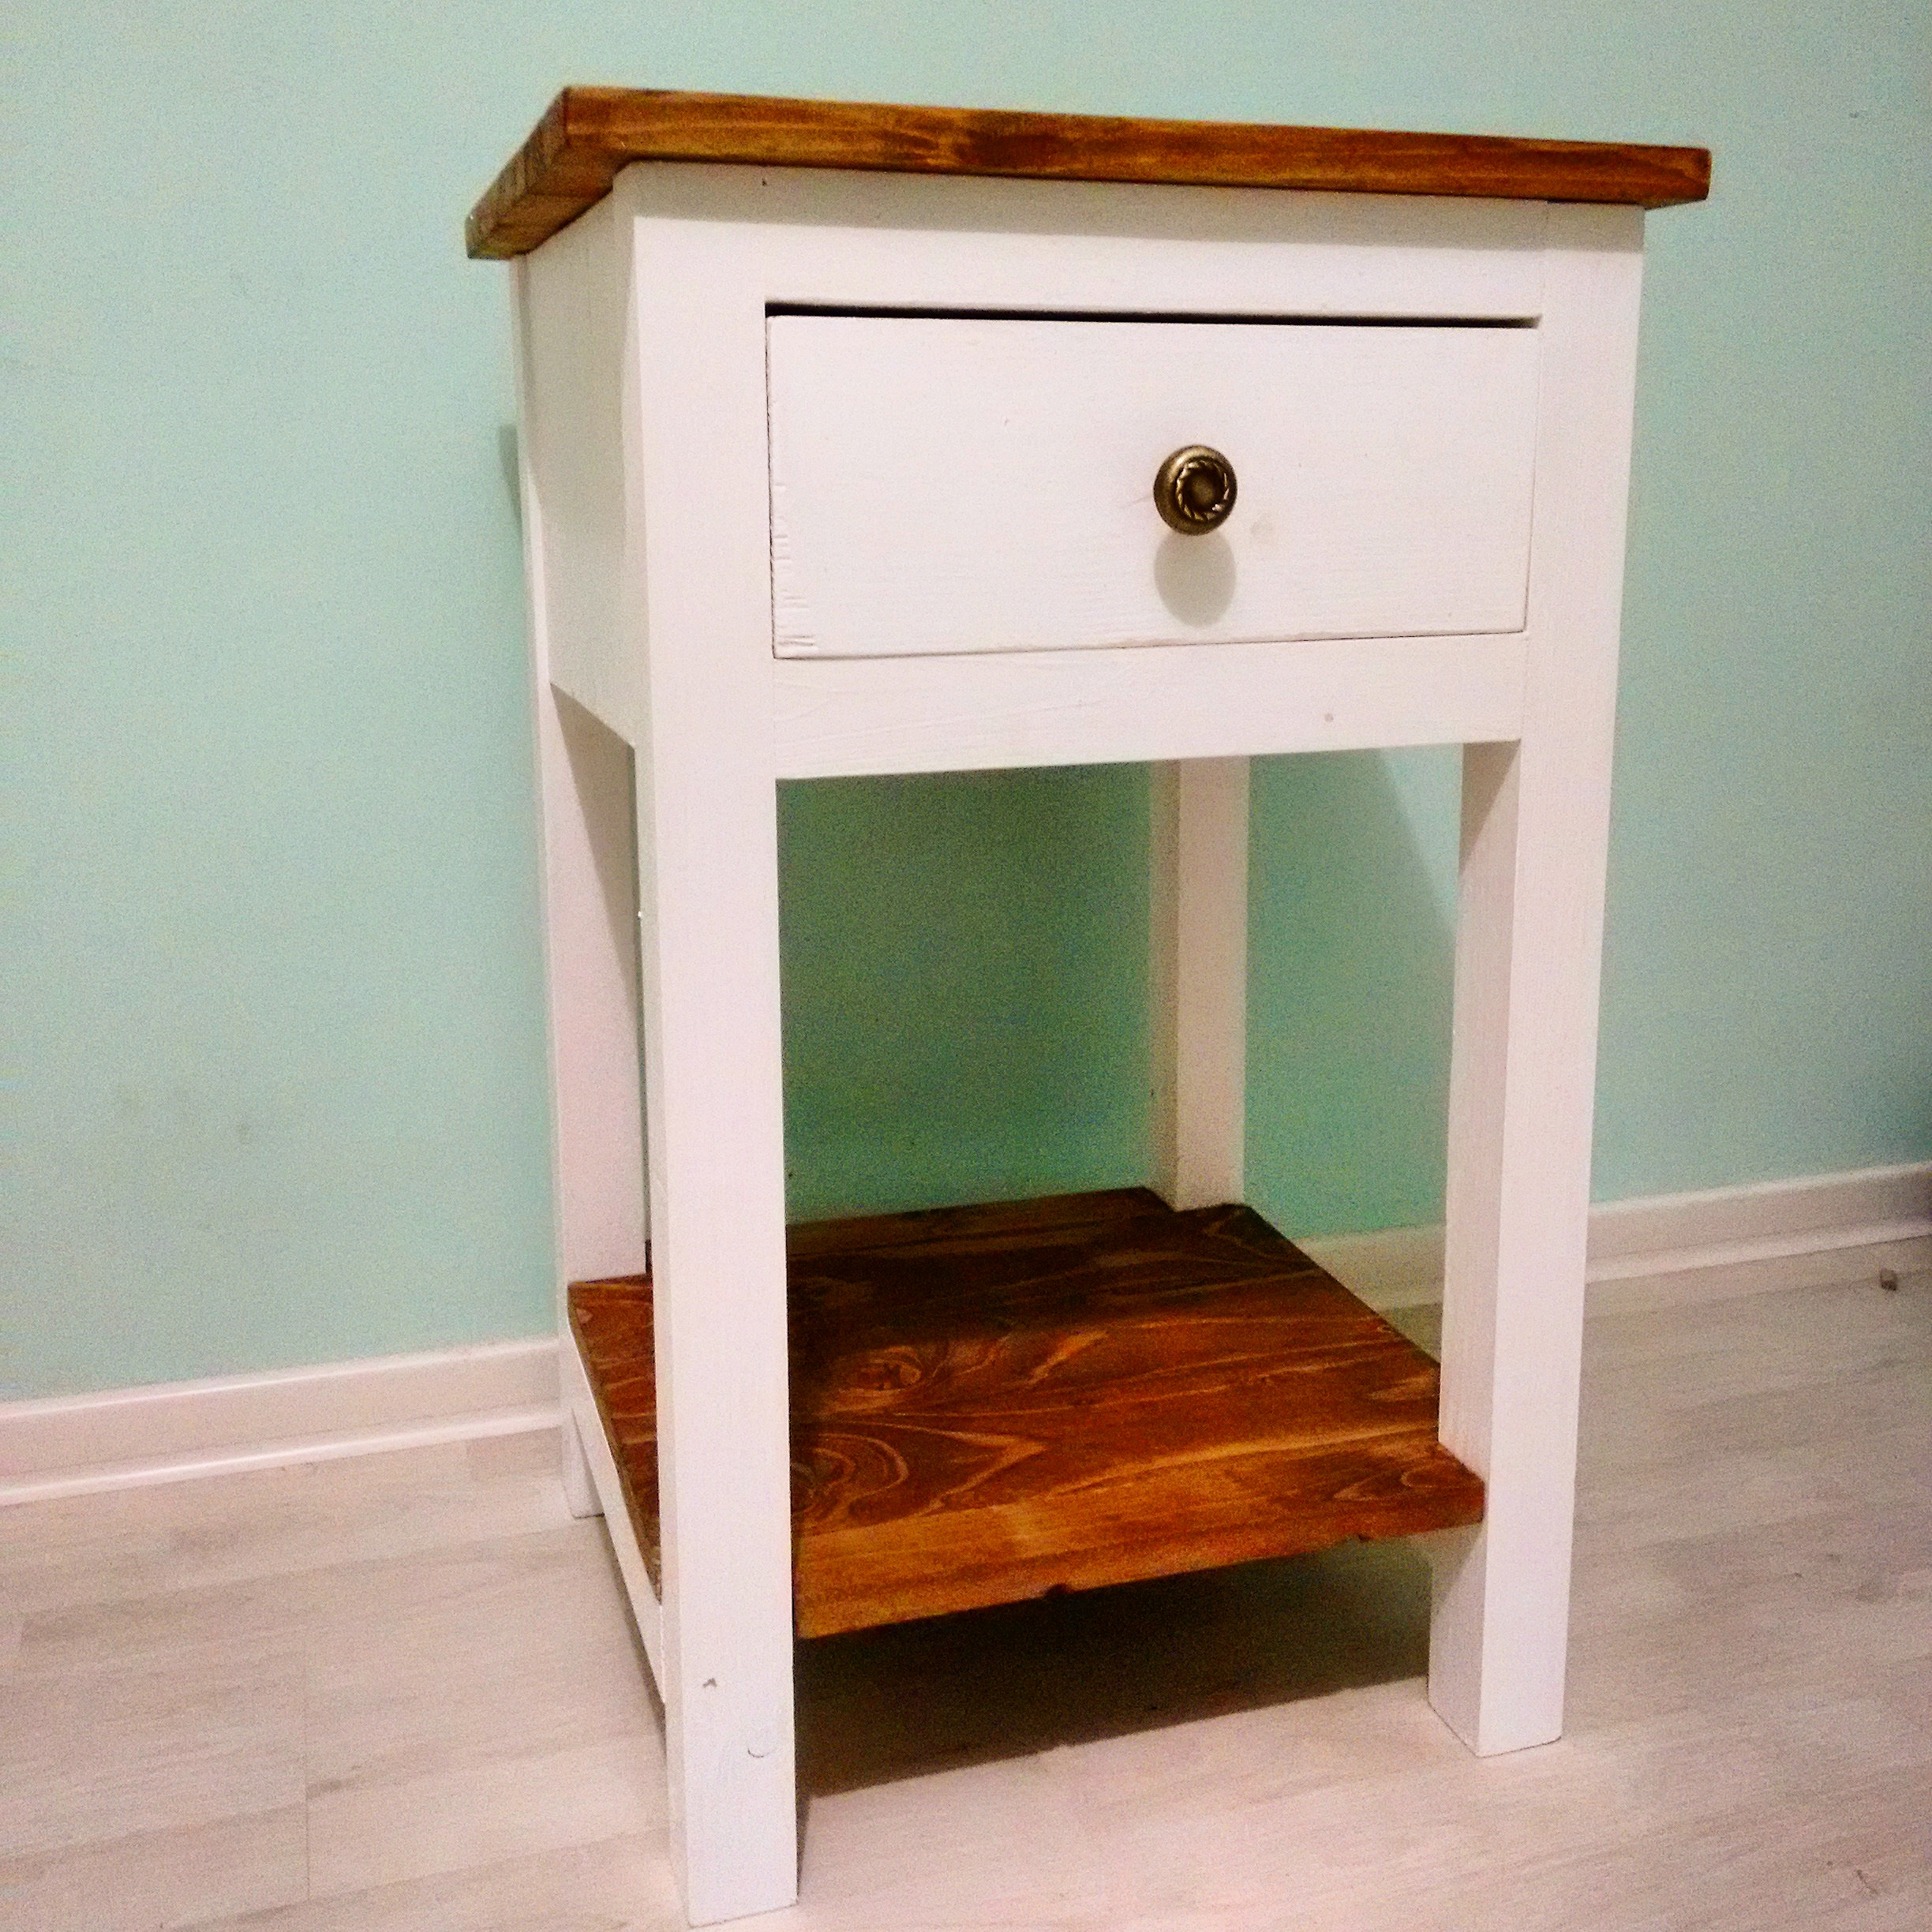 How To Build A Farmhouse Nightstand Howtospecialist How To Build Step By Step Diy Plans